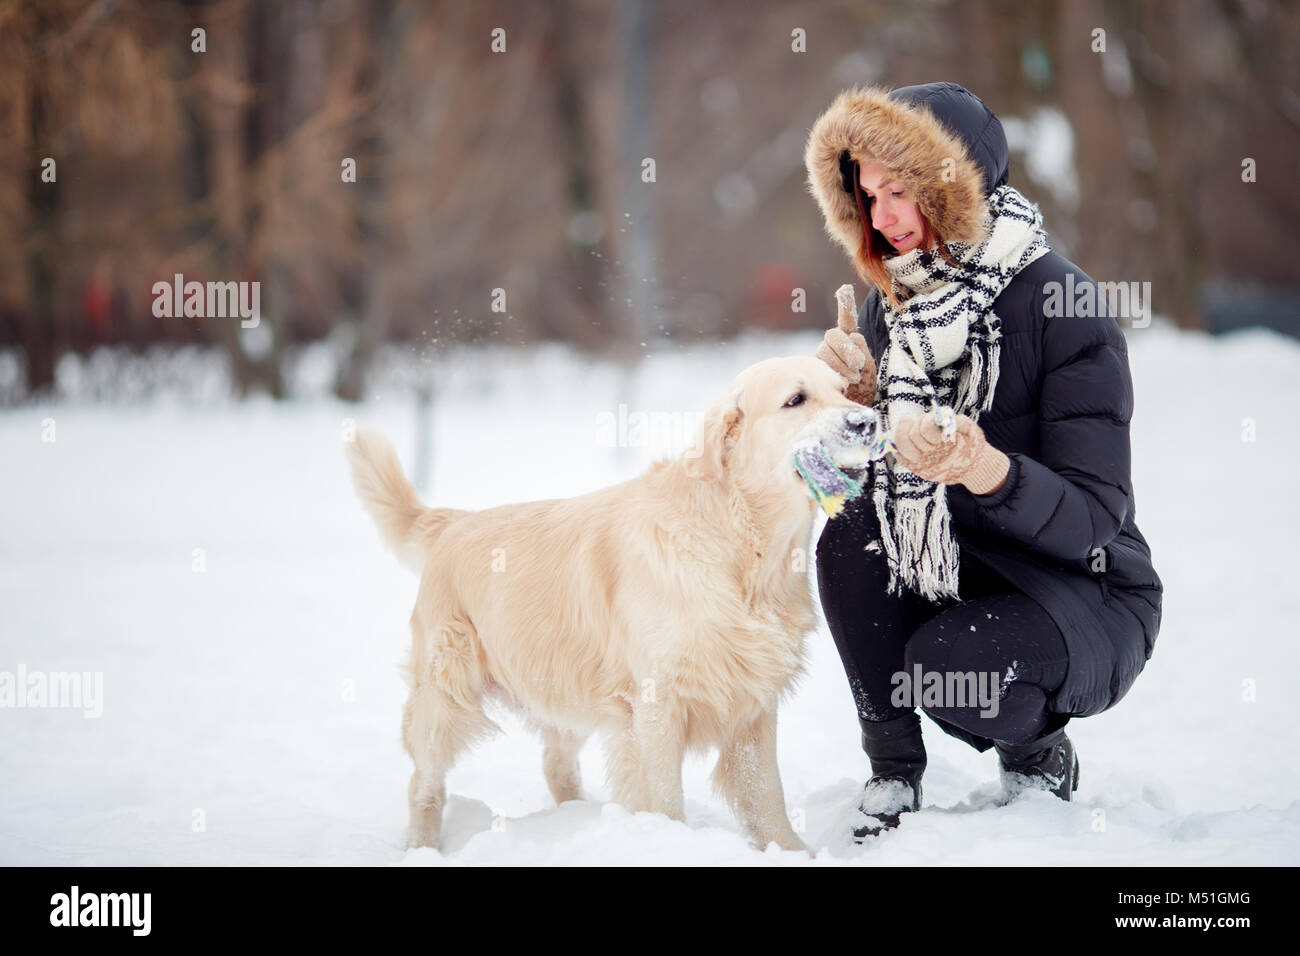 Photo of smiling woman squatting next to labrador with toy in teeth in winter - Stock Image